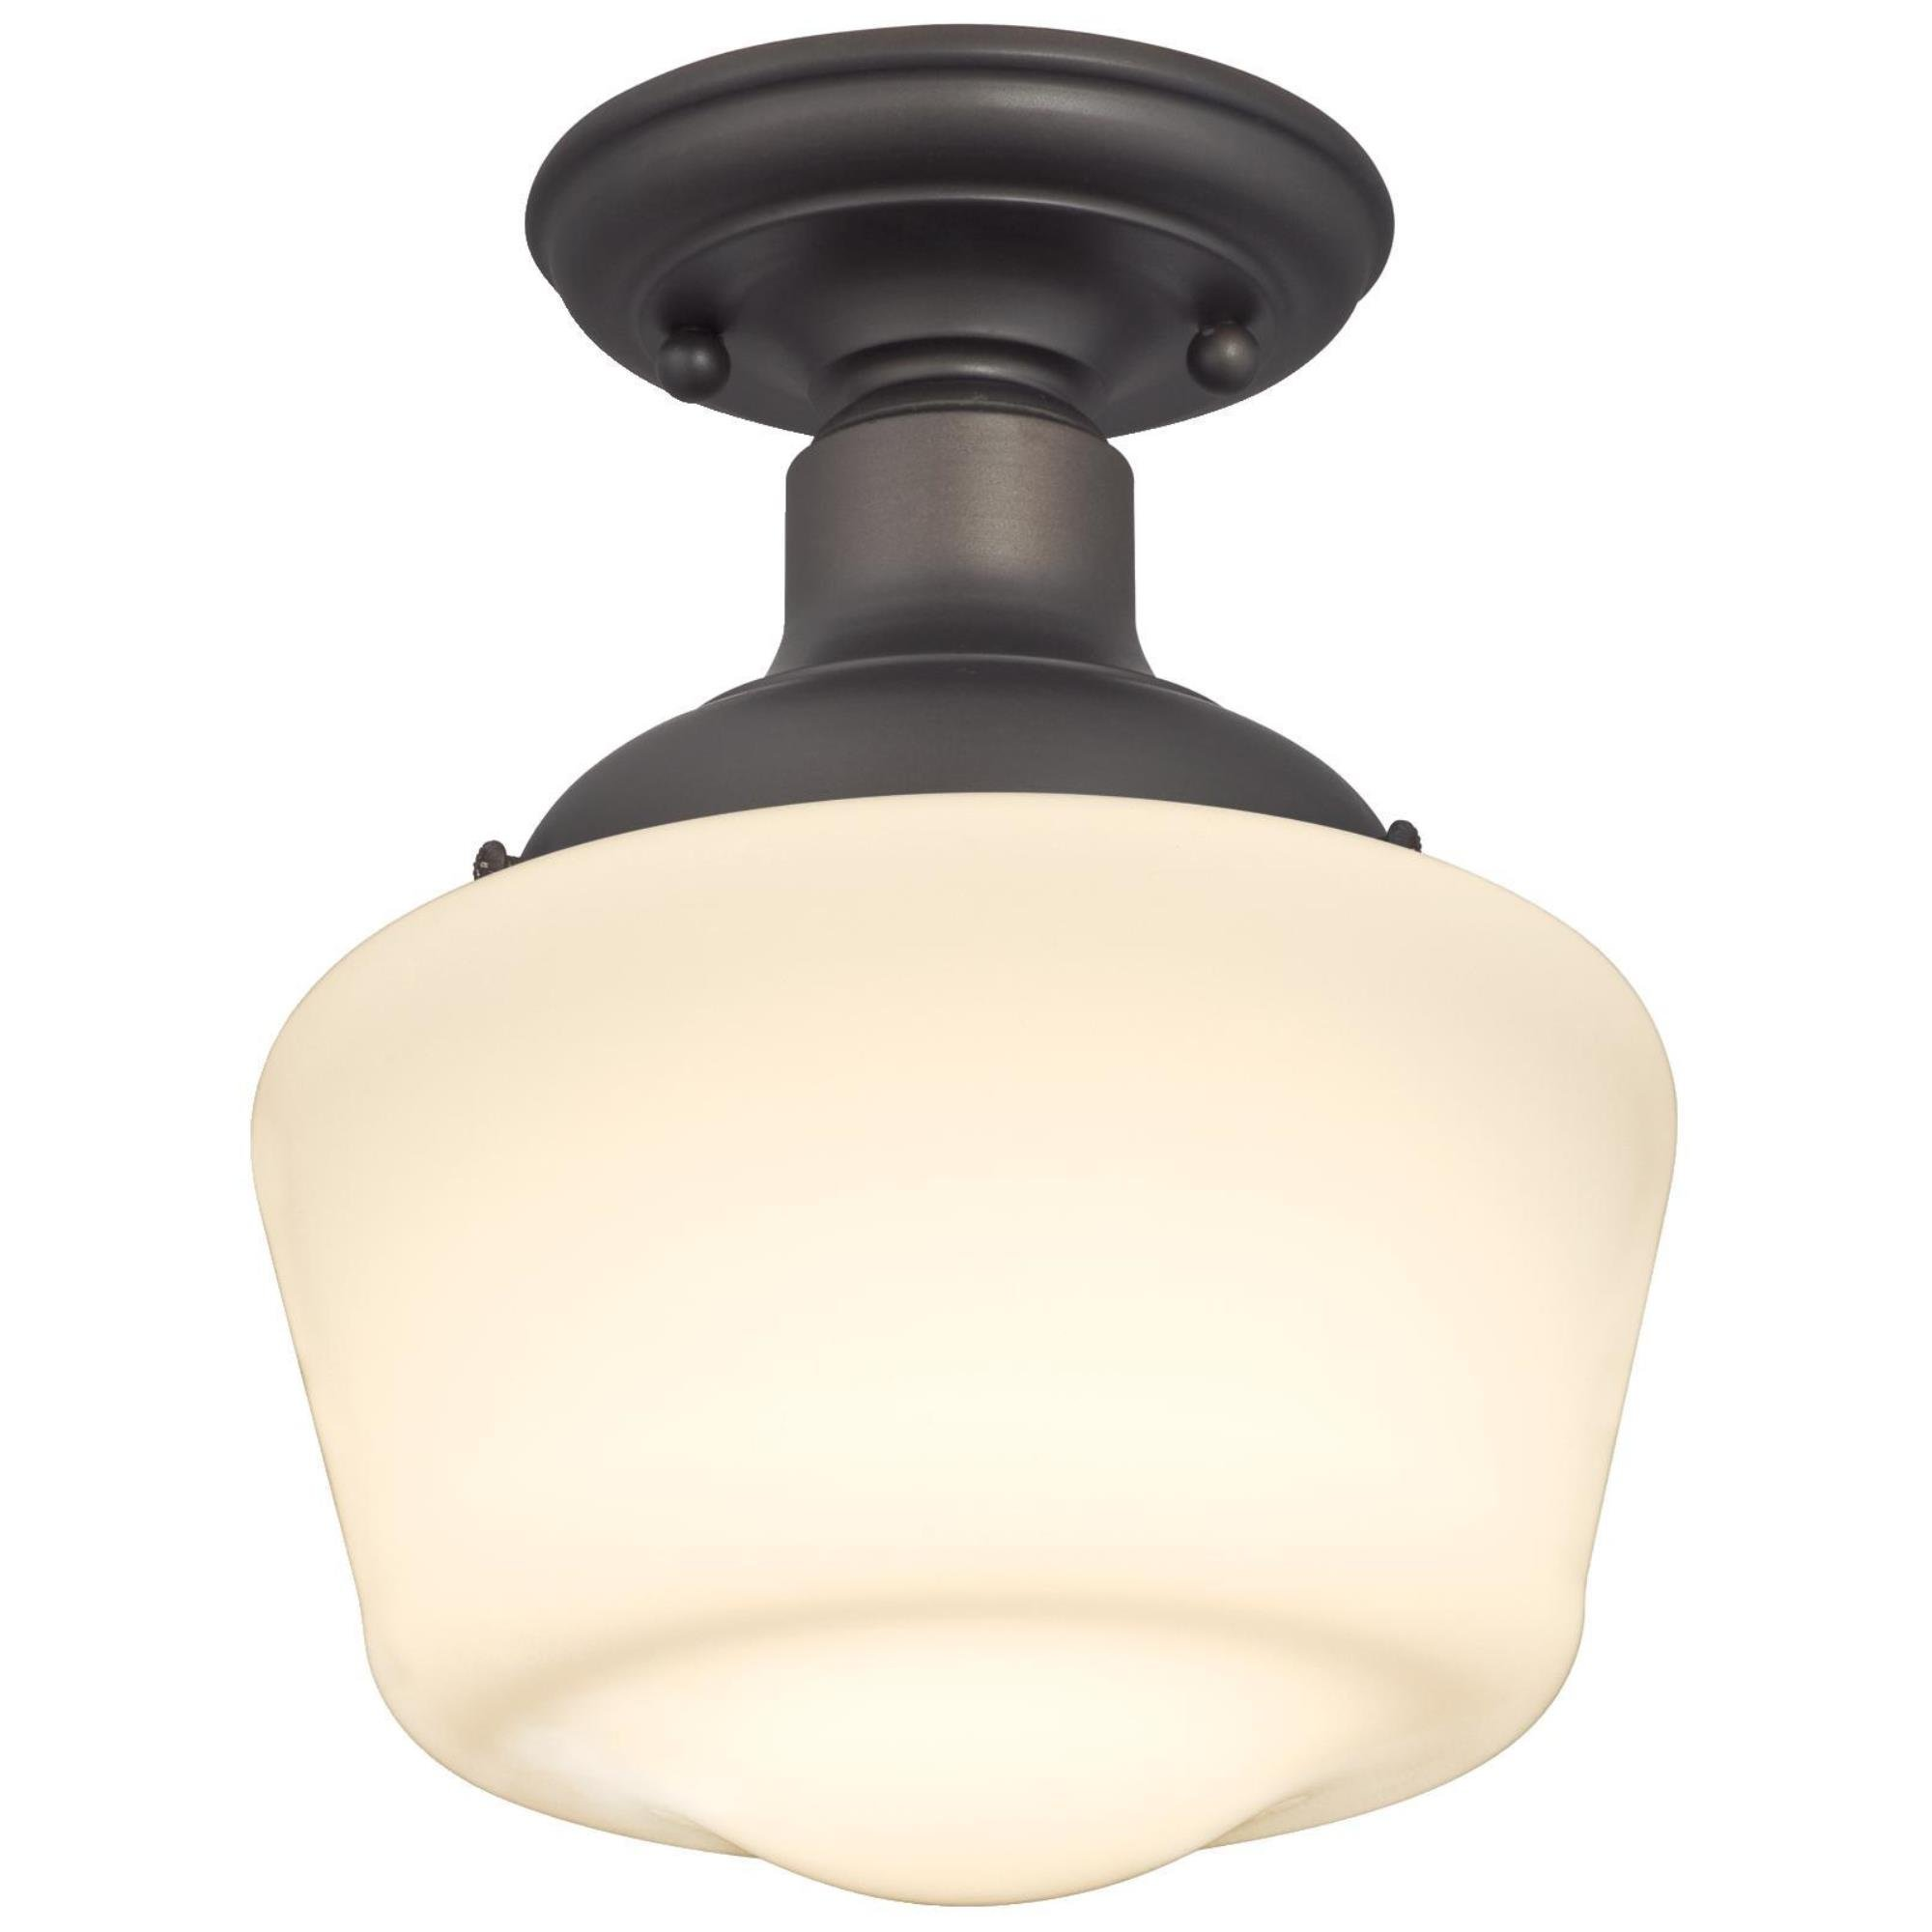 Westinghouse 6342200 Scholar One-Light Indoor Semi-Flush Ceiling Fixture, Oil Rubbed Bronze Finish with White Opal Glass